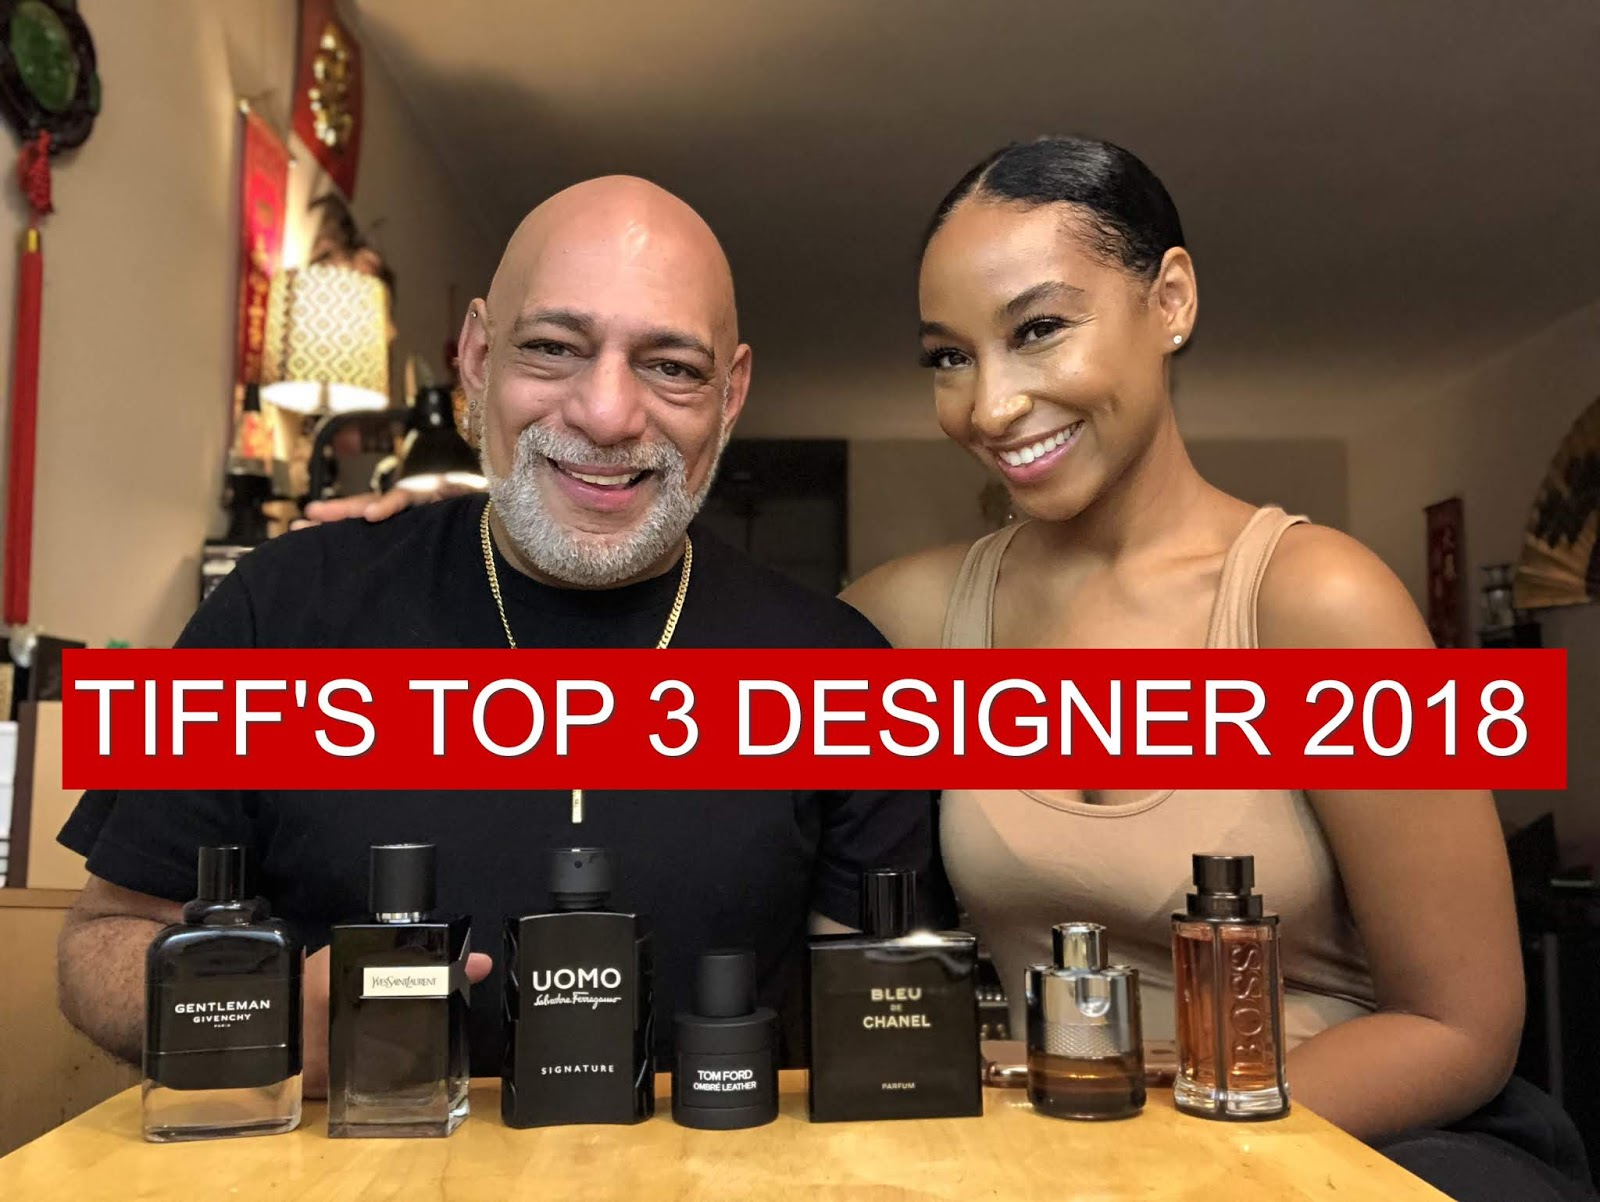 2018 3 By Brooklyn Judged Fragrance Designer LoverTop Releases kwPZuiOXT